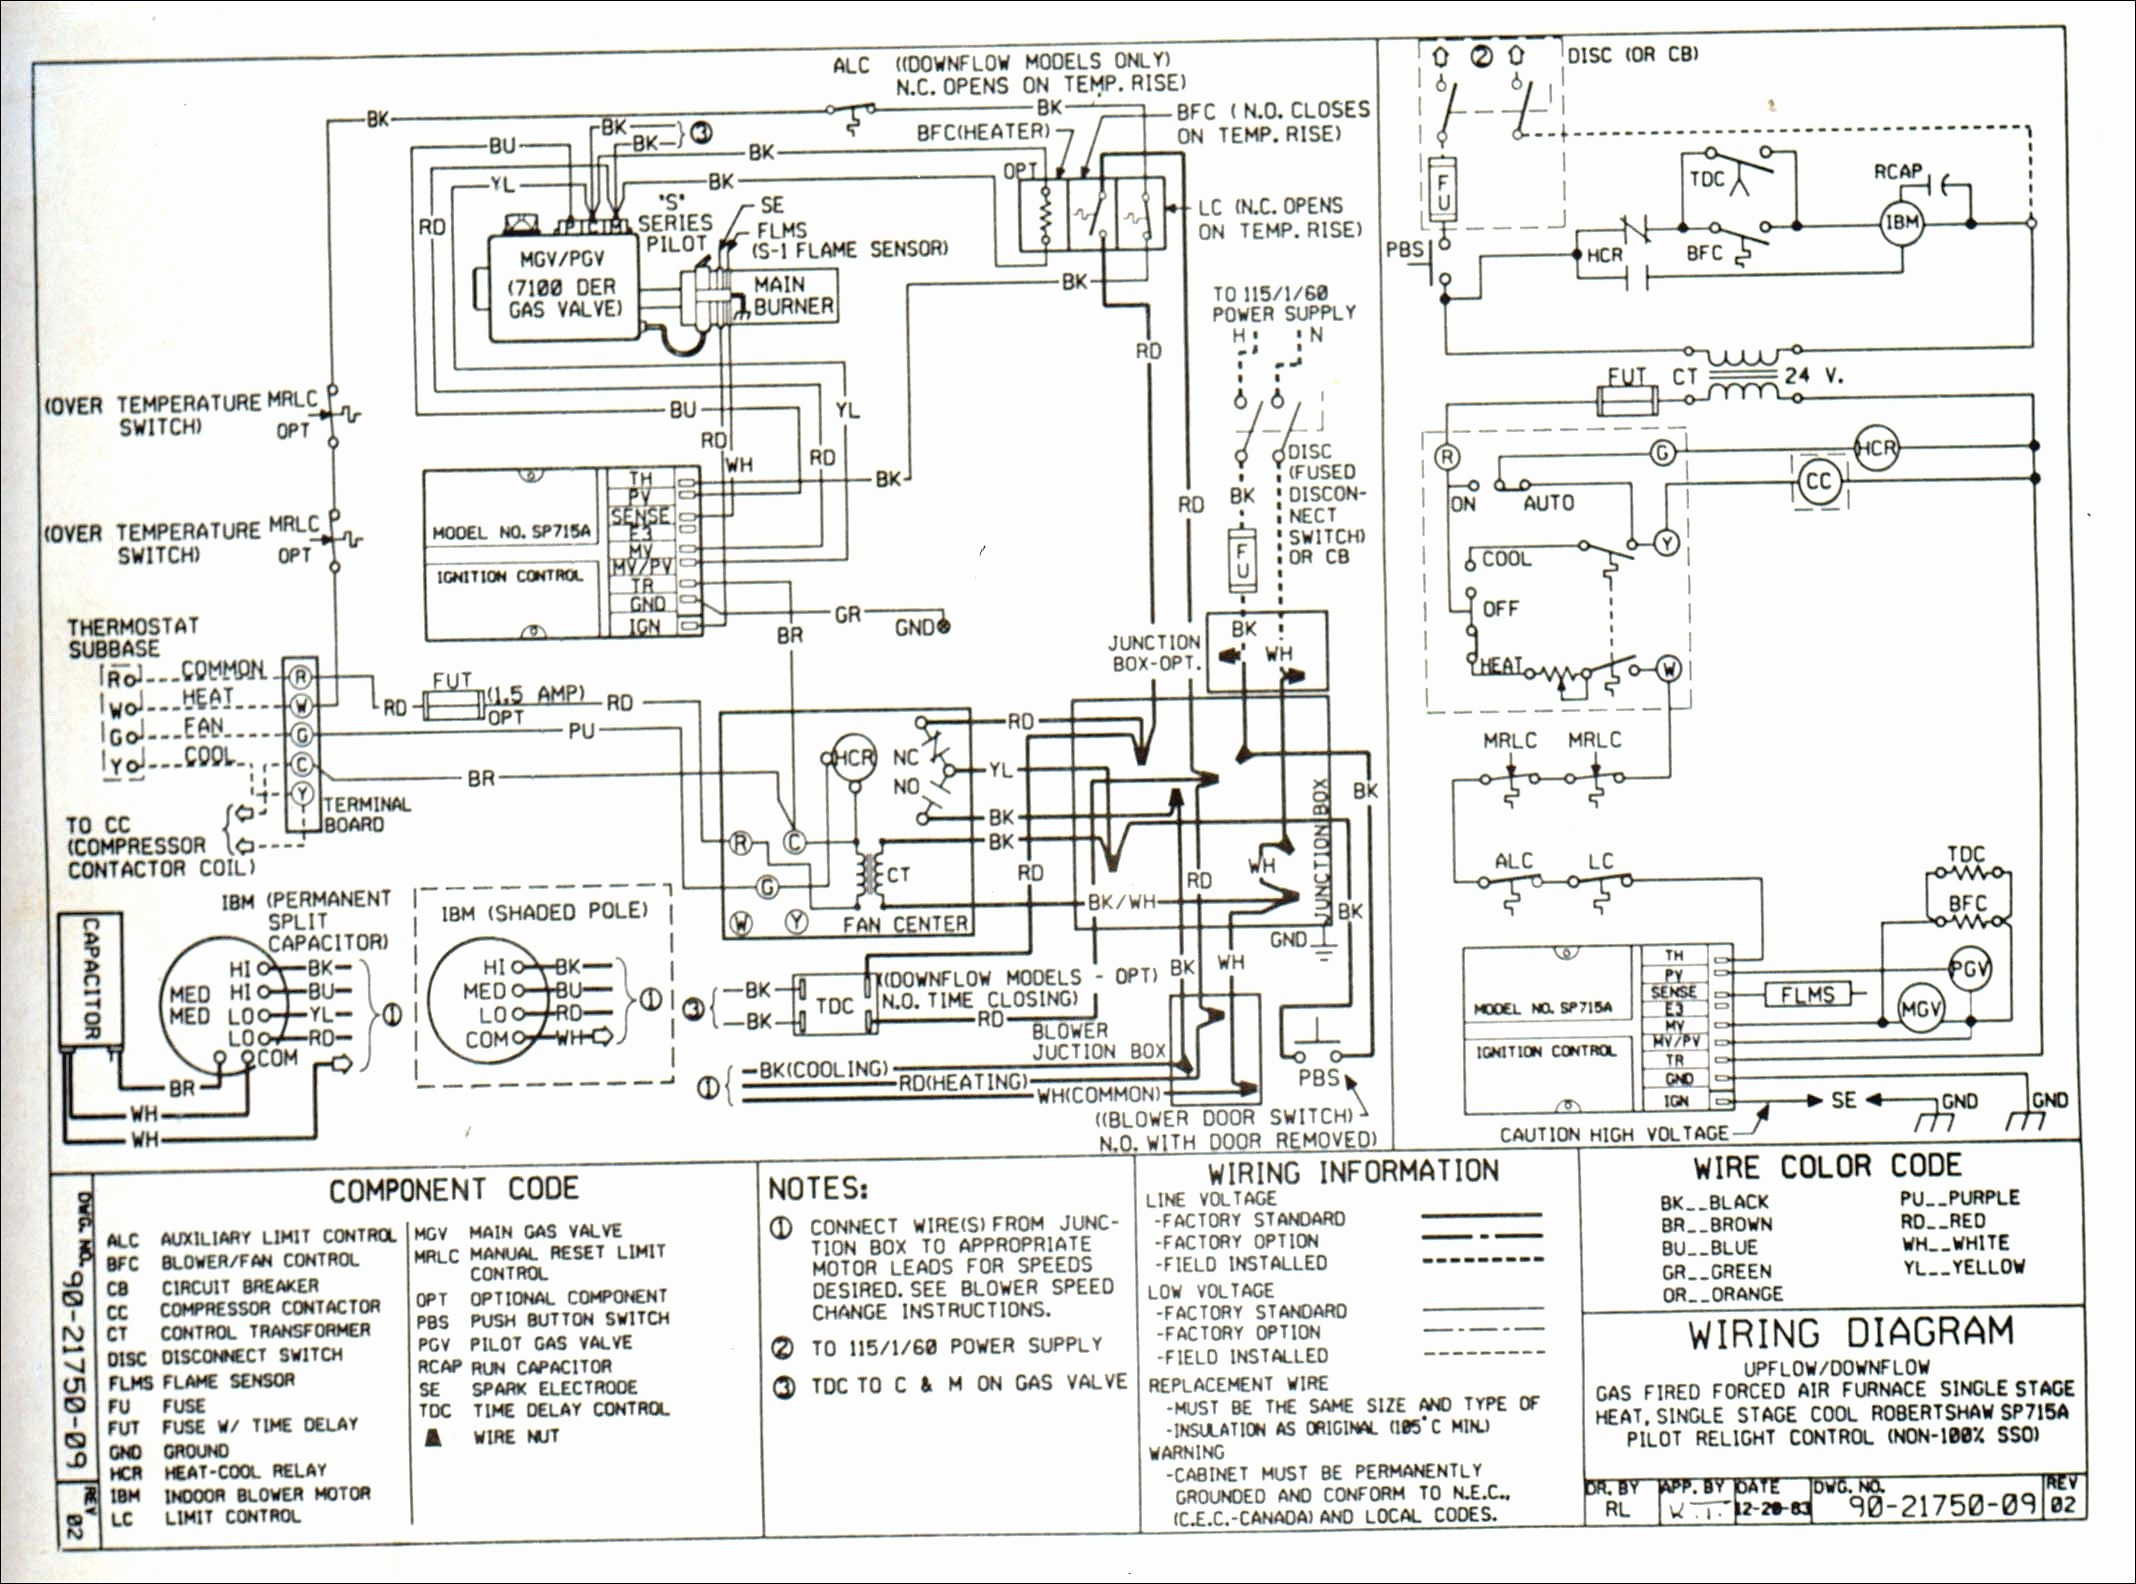 Ford F53 Ac Wiring | Wiring Library - Ford F53 Motorhome Chassis Wiring Diagram